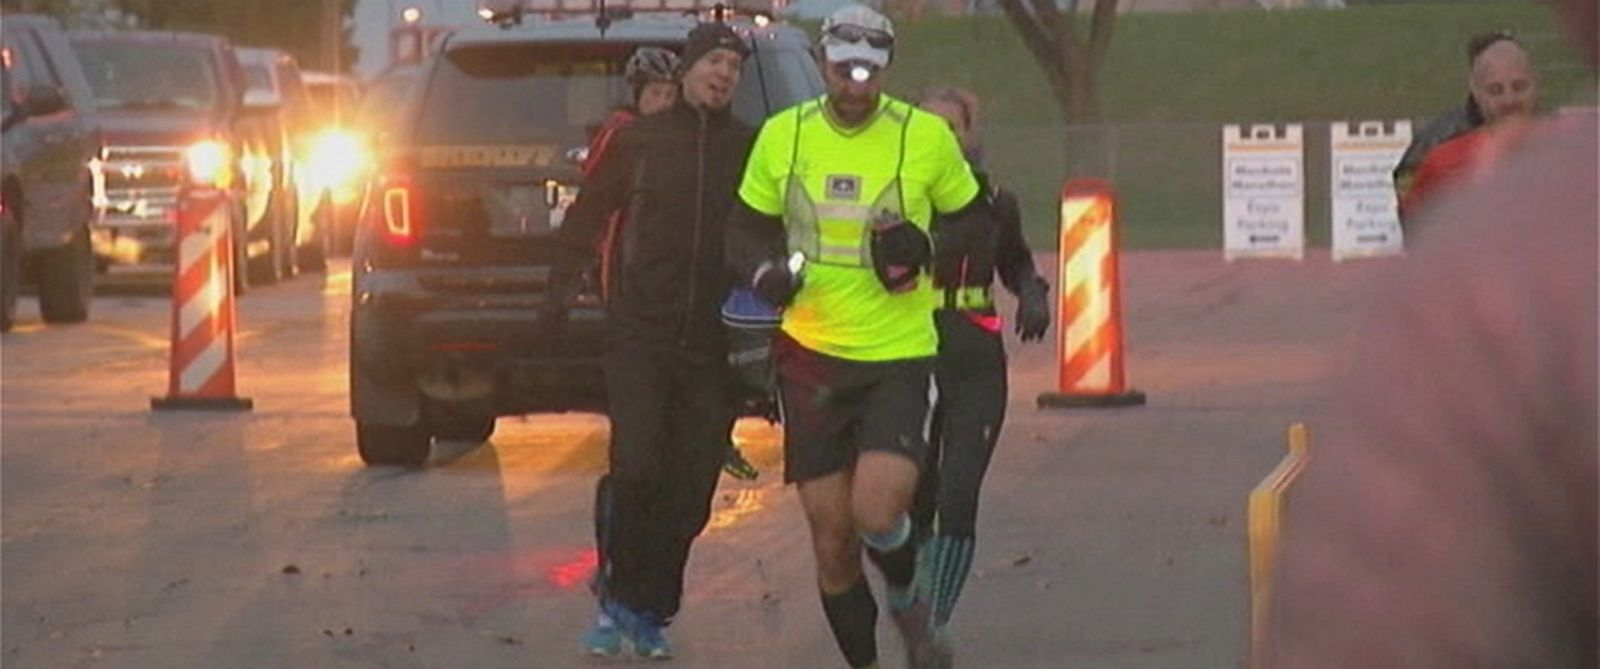 PHOTO: Ryan Chusuke ran the Mankato Marathon in Minnesota forwards and backwards this weekend.